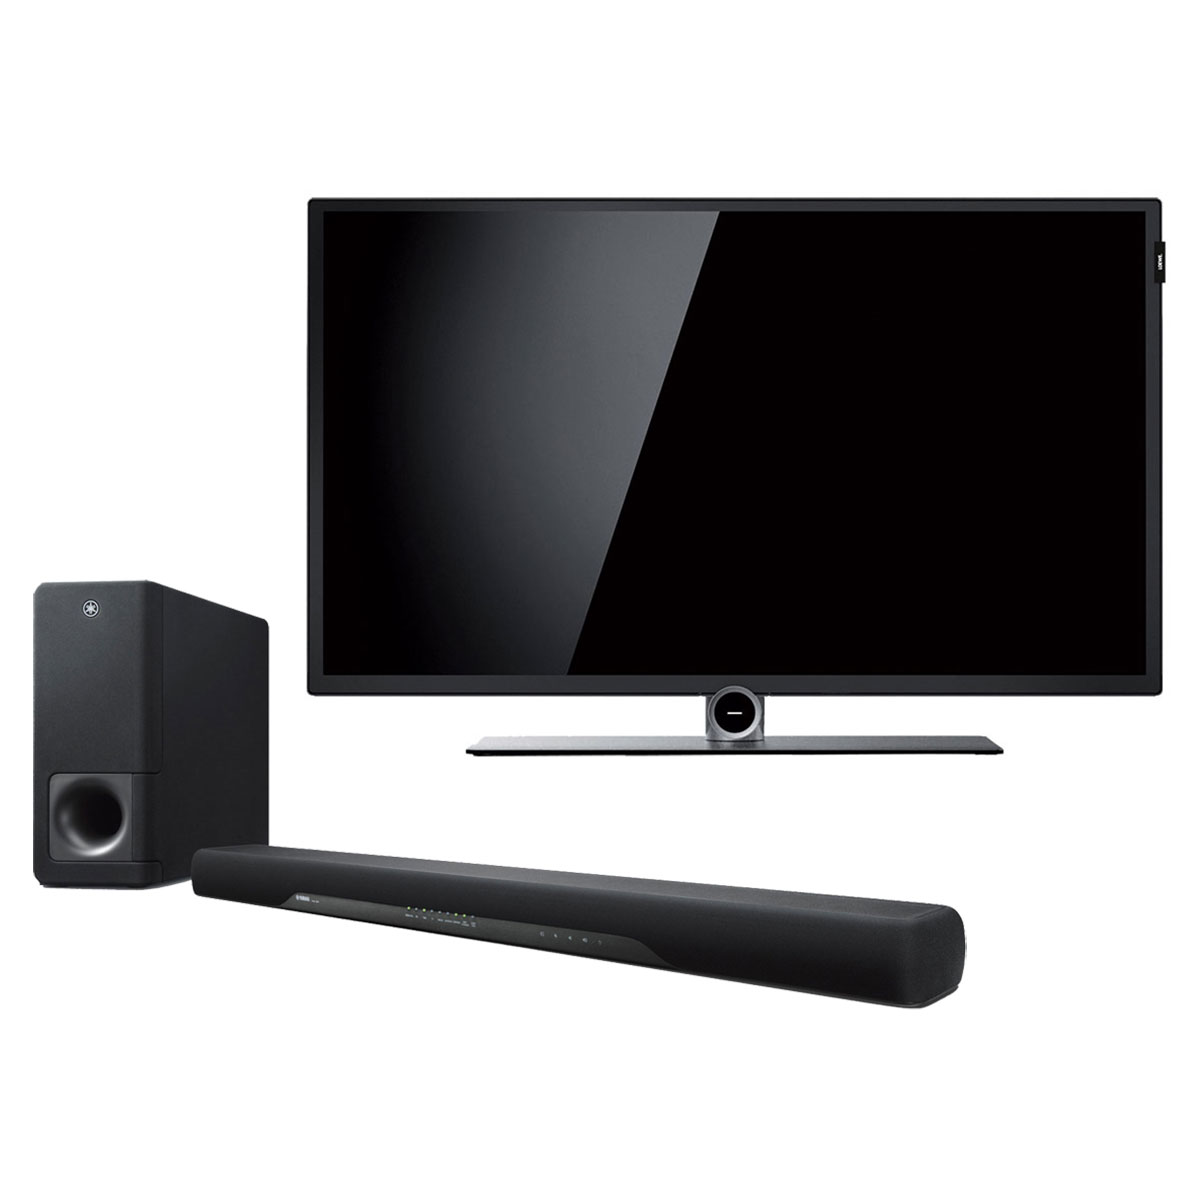 "TV Loewe Bild 1.32 Noir + Yamaha ATS-2070 Téléviseur LED Full HD 32"" (81cm) 16/9 - 1920 x 1080 pixels - HDTV 1080p - Wi-Fi + Barre de son 2.1 avec caisson de basses sans fil - HDMI 2.0 4K Pass Through HDCP 2.2 - Bluetooth"